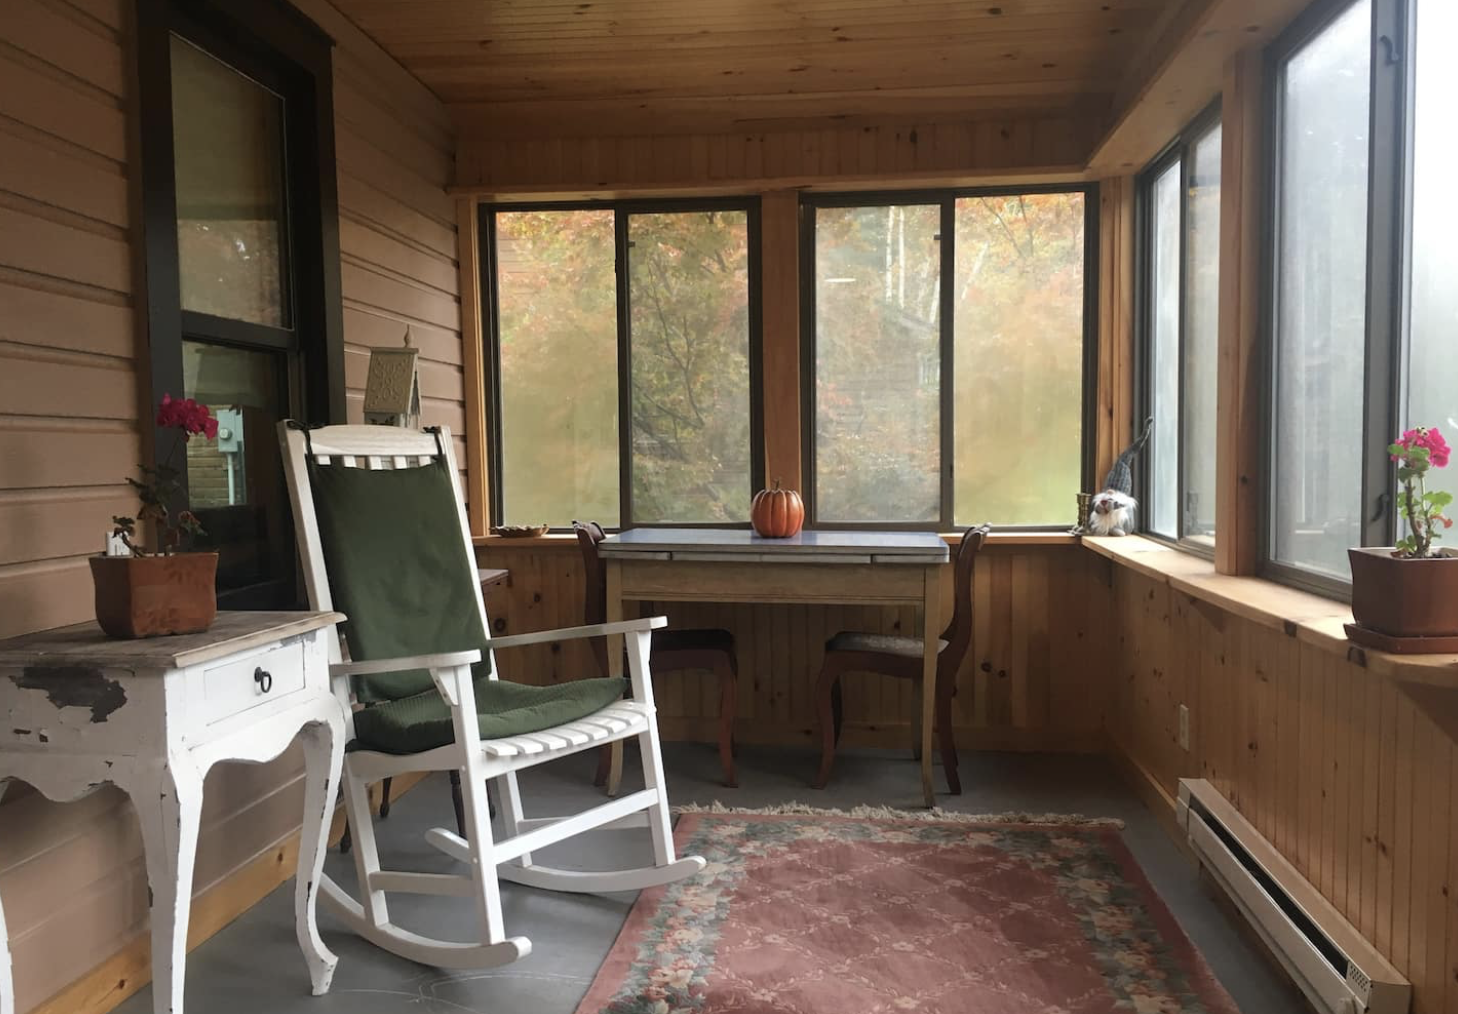 Cozy Catskills Cottage on the Esopus Creek from Nicole Eva blog post 8 air bobs I would visit right now